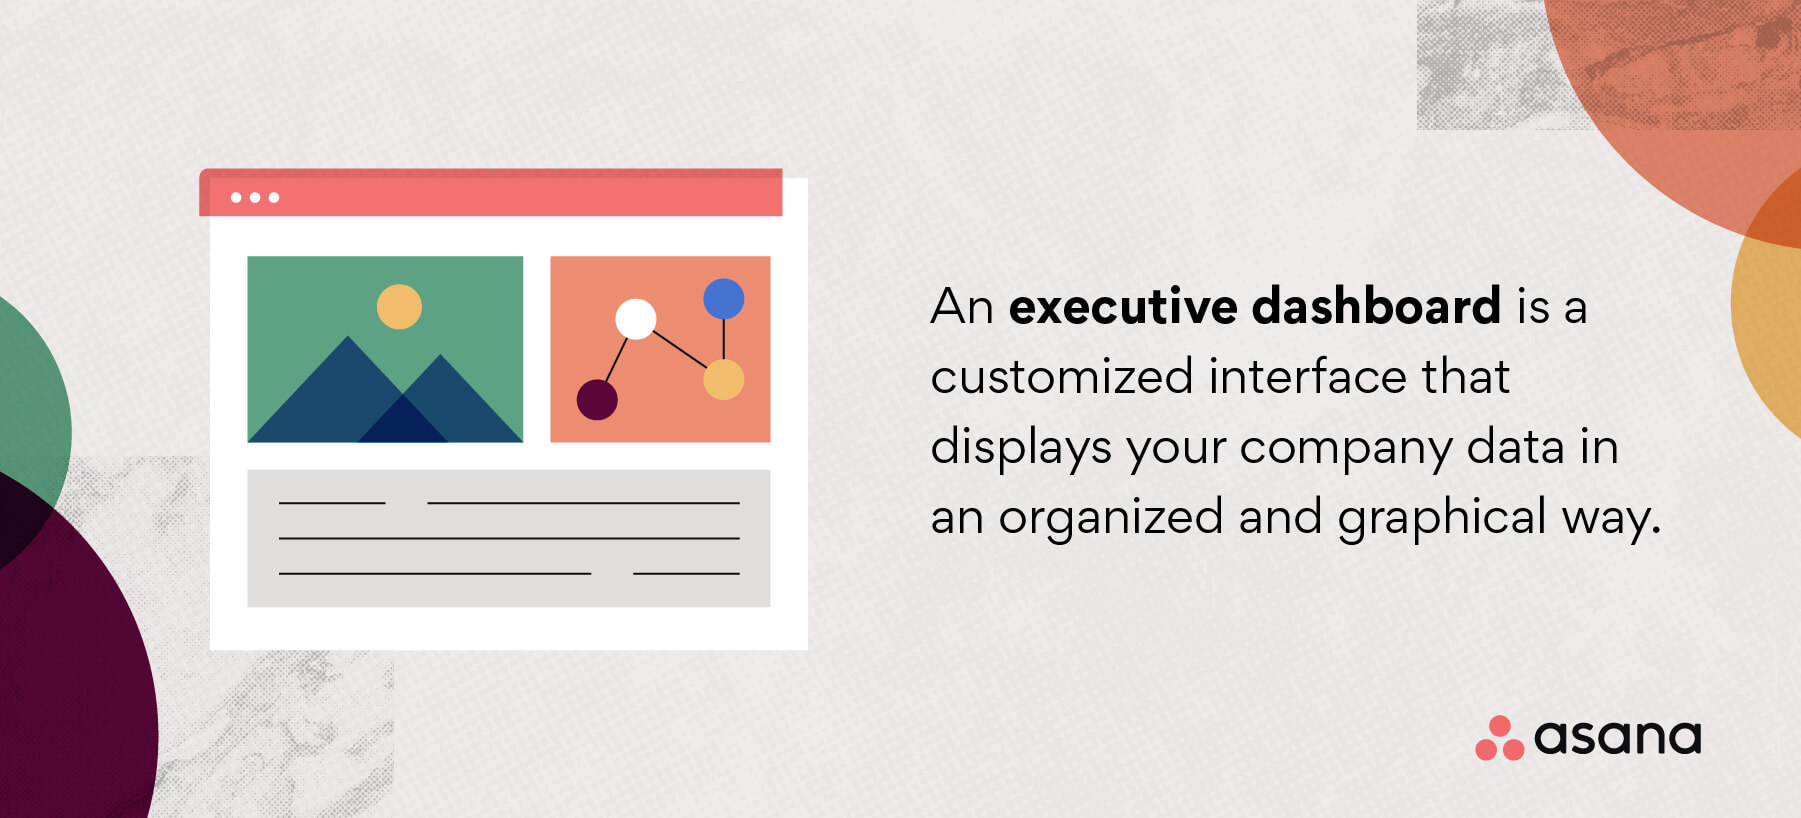 What is an executive dashboard?